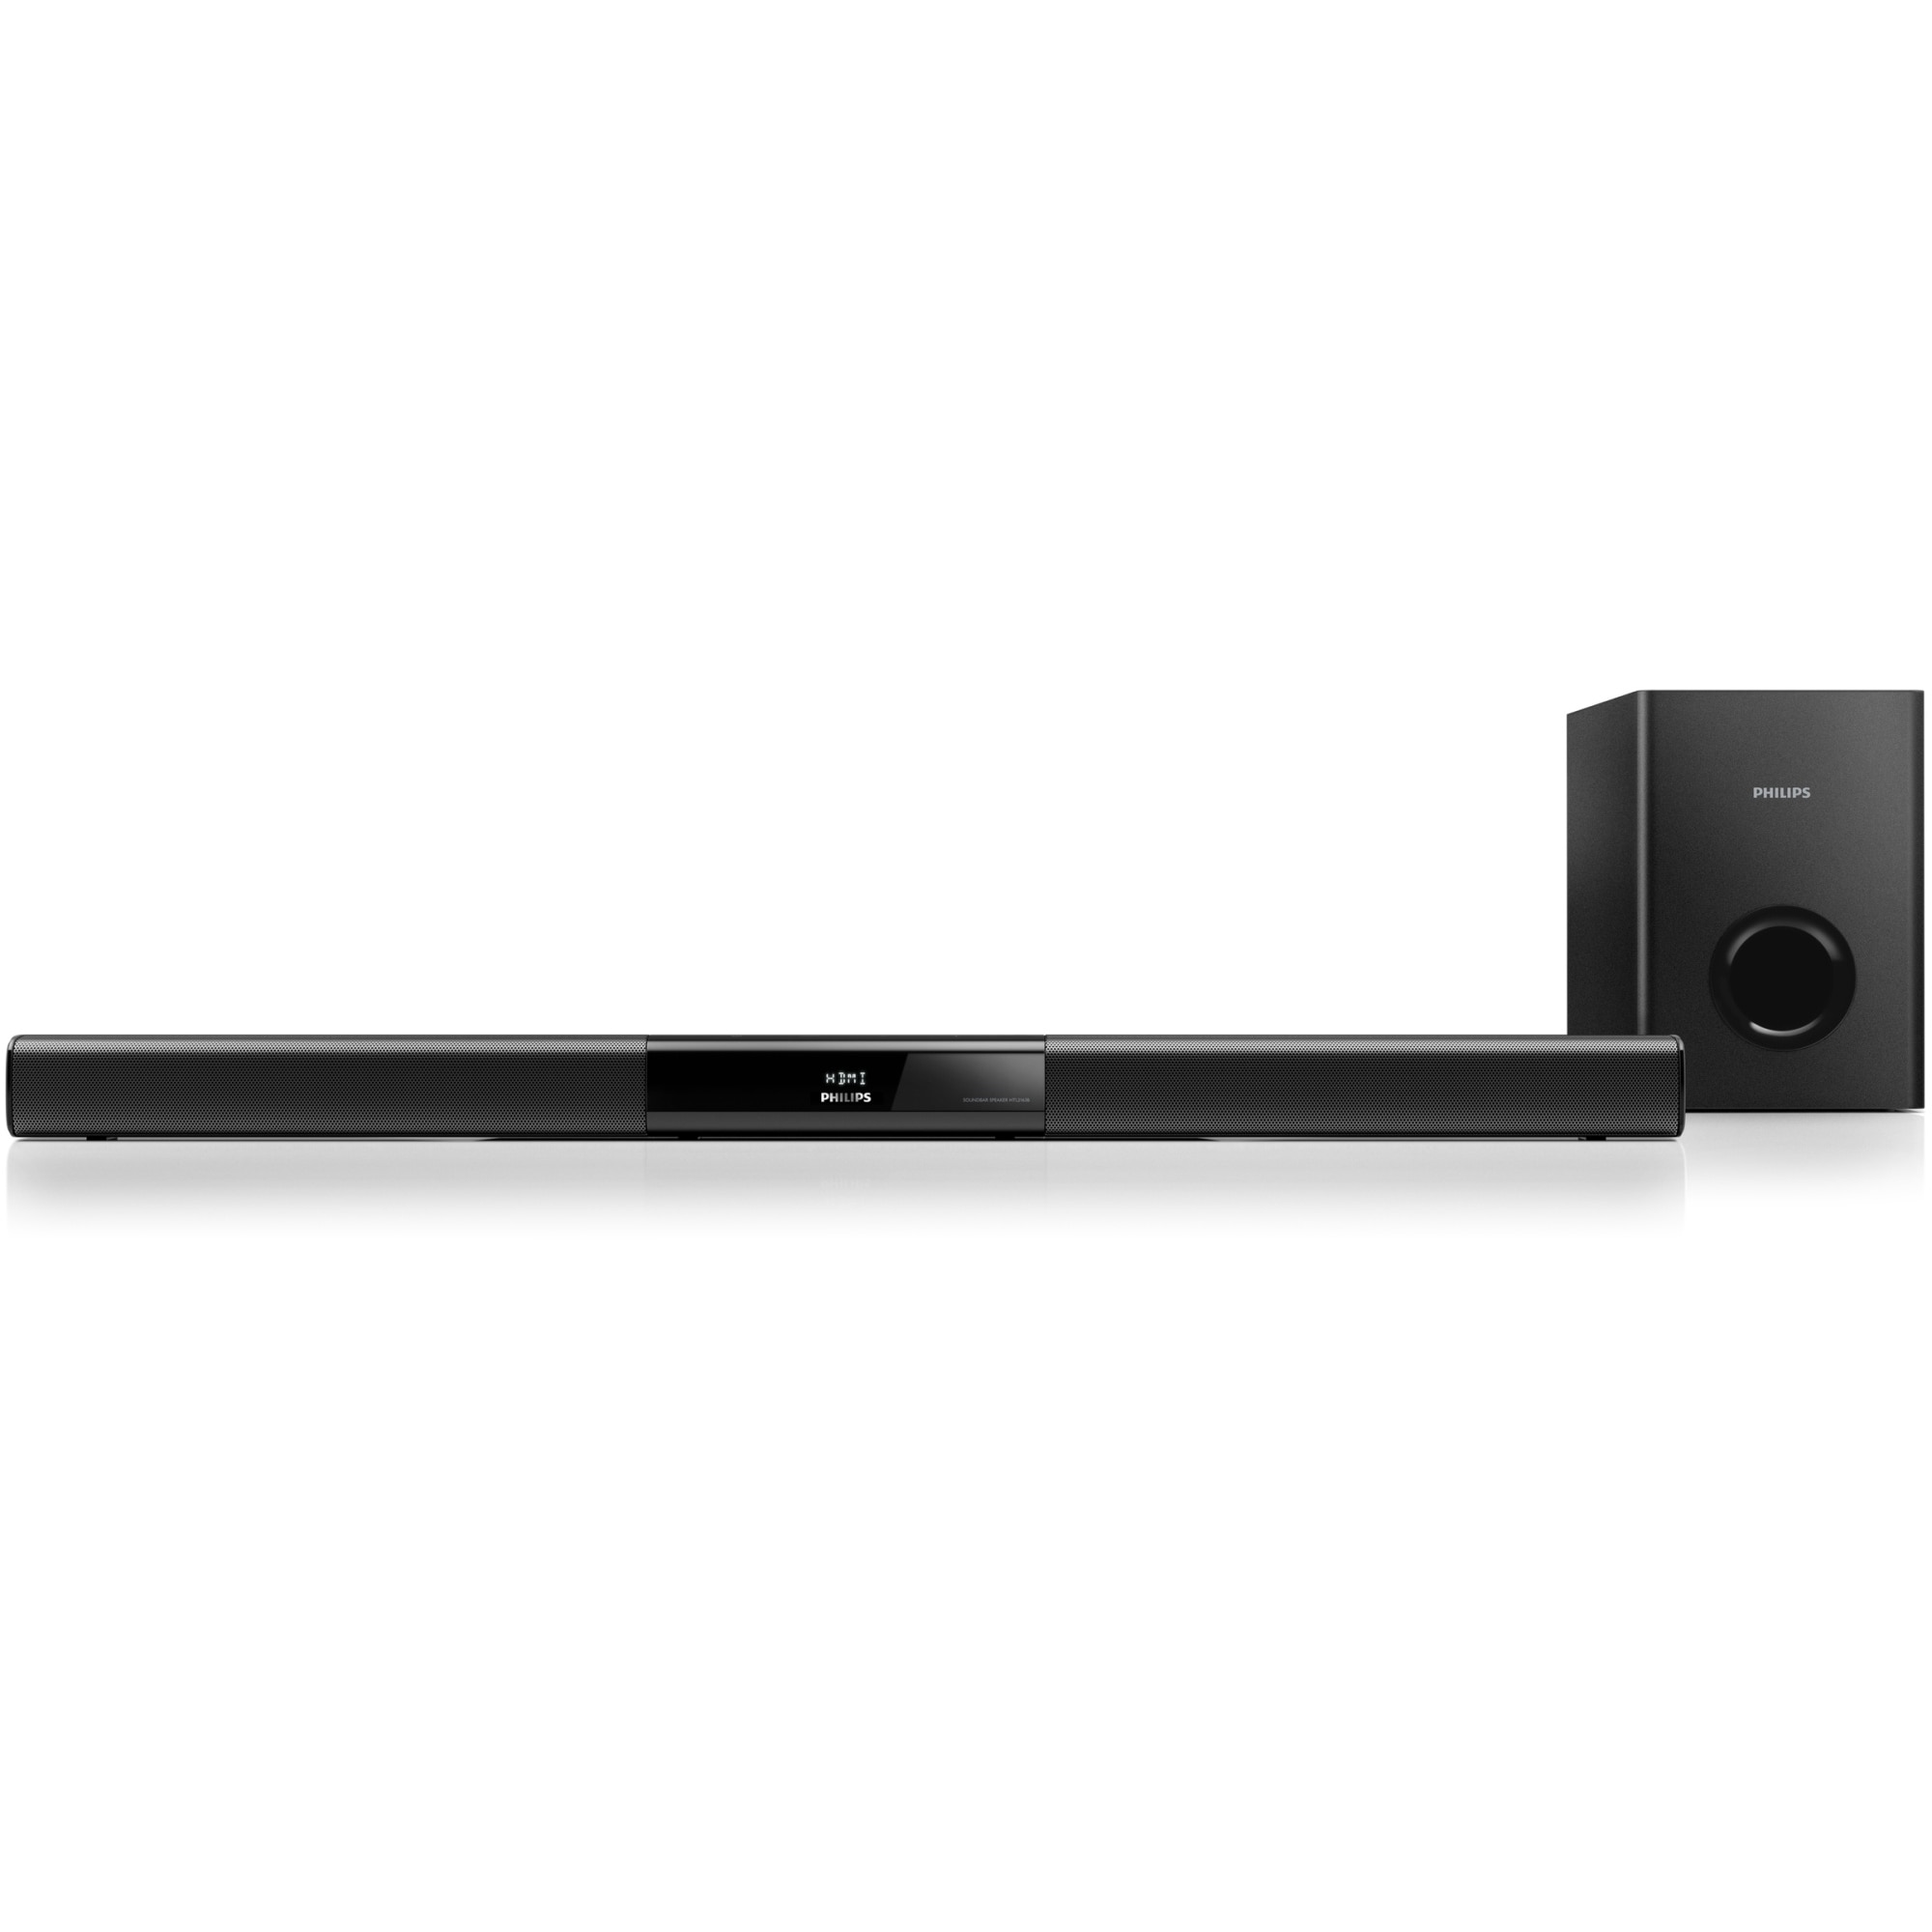 Fotografie Soundbar Philips HTL2163B/12, 120W, Bluetooth, Negru